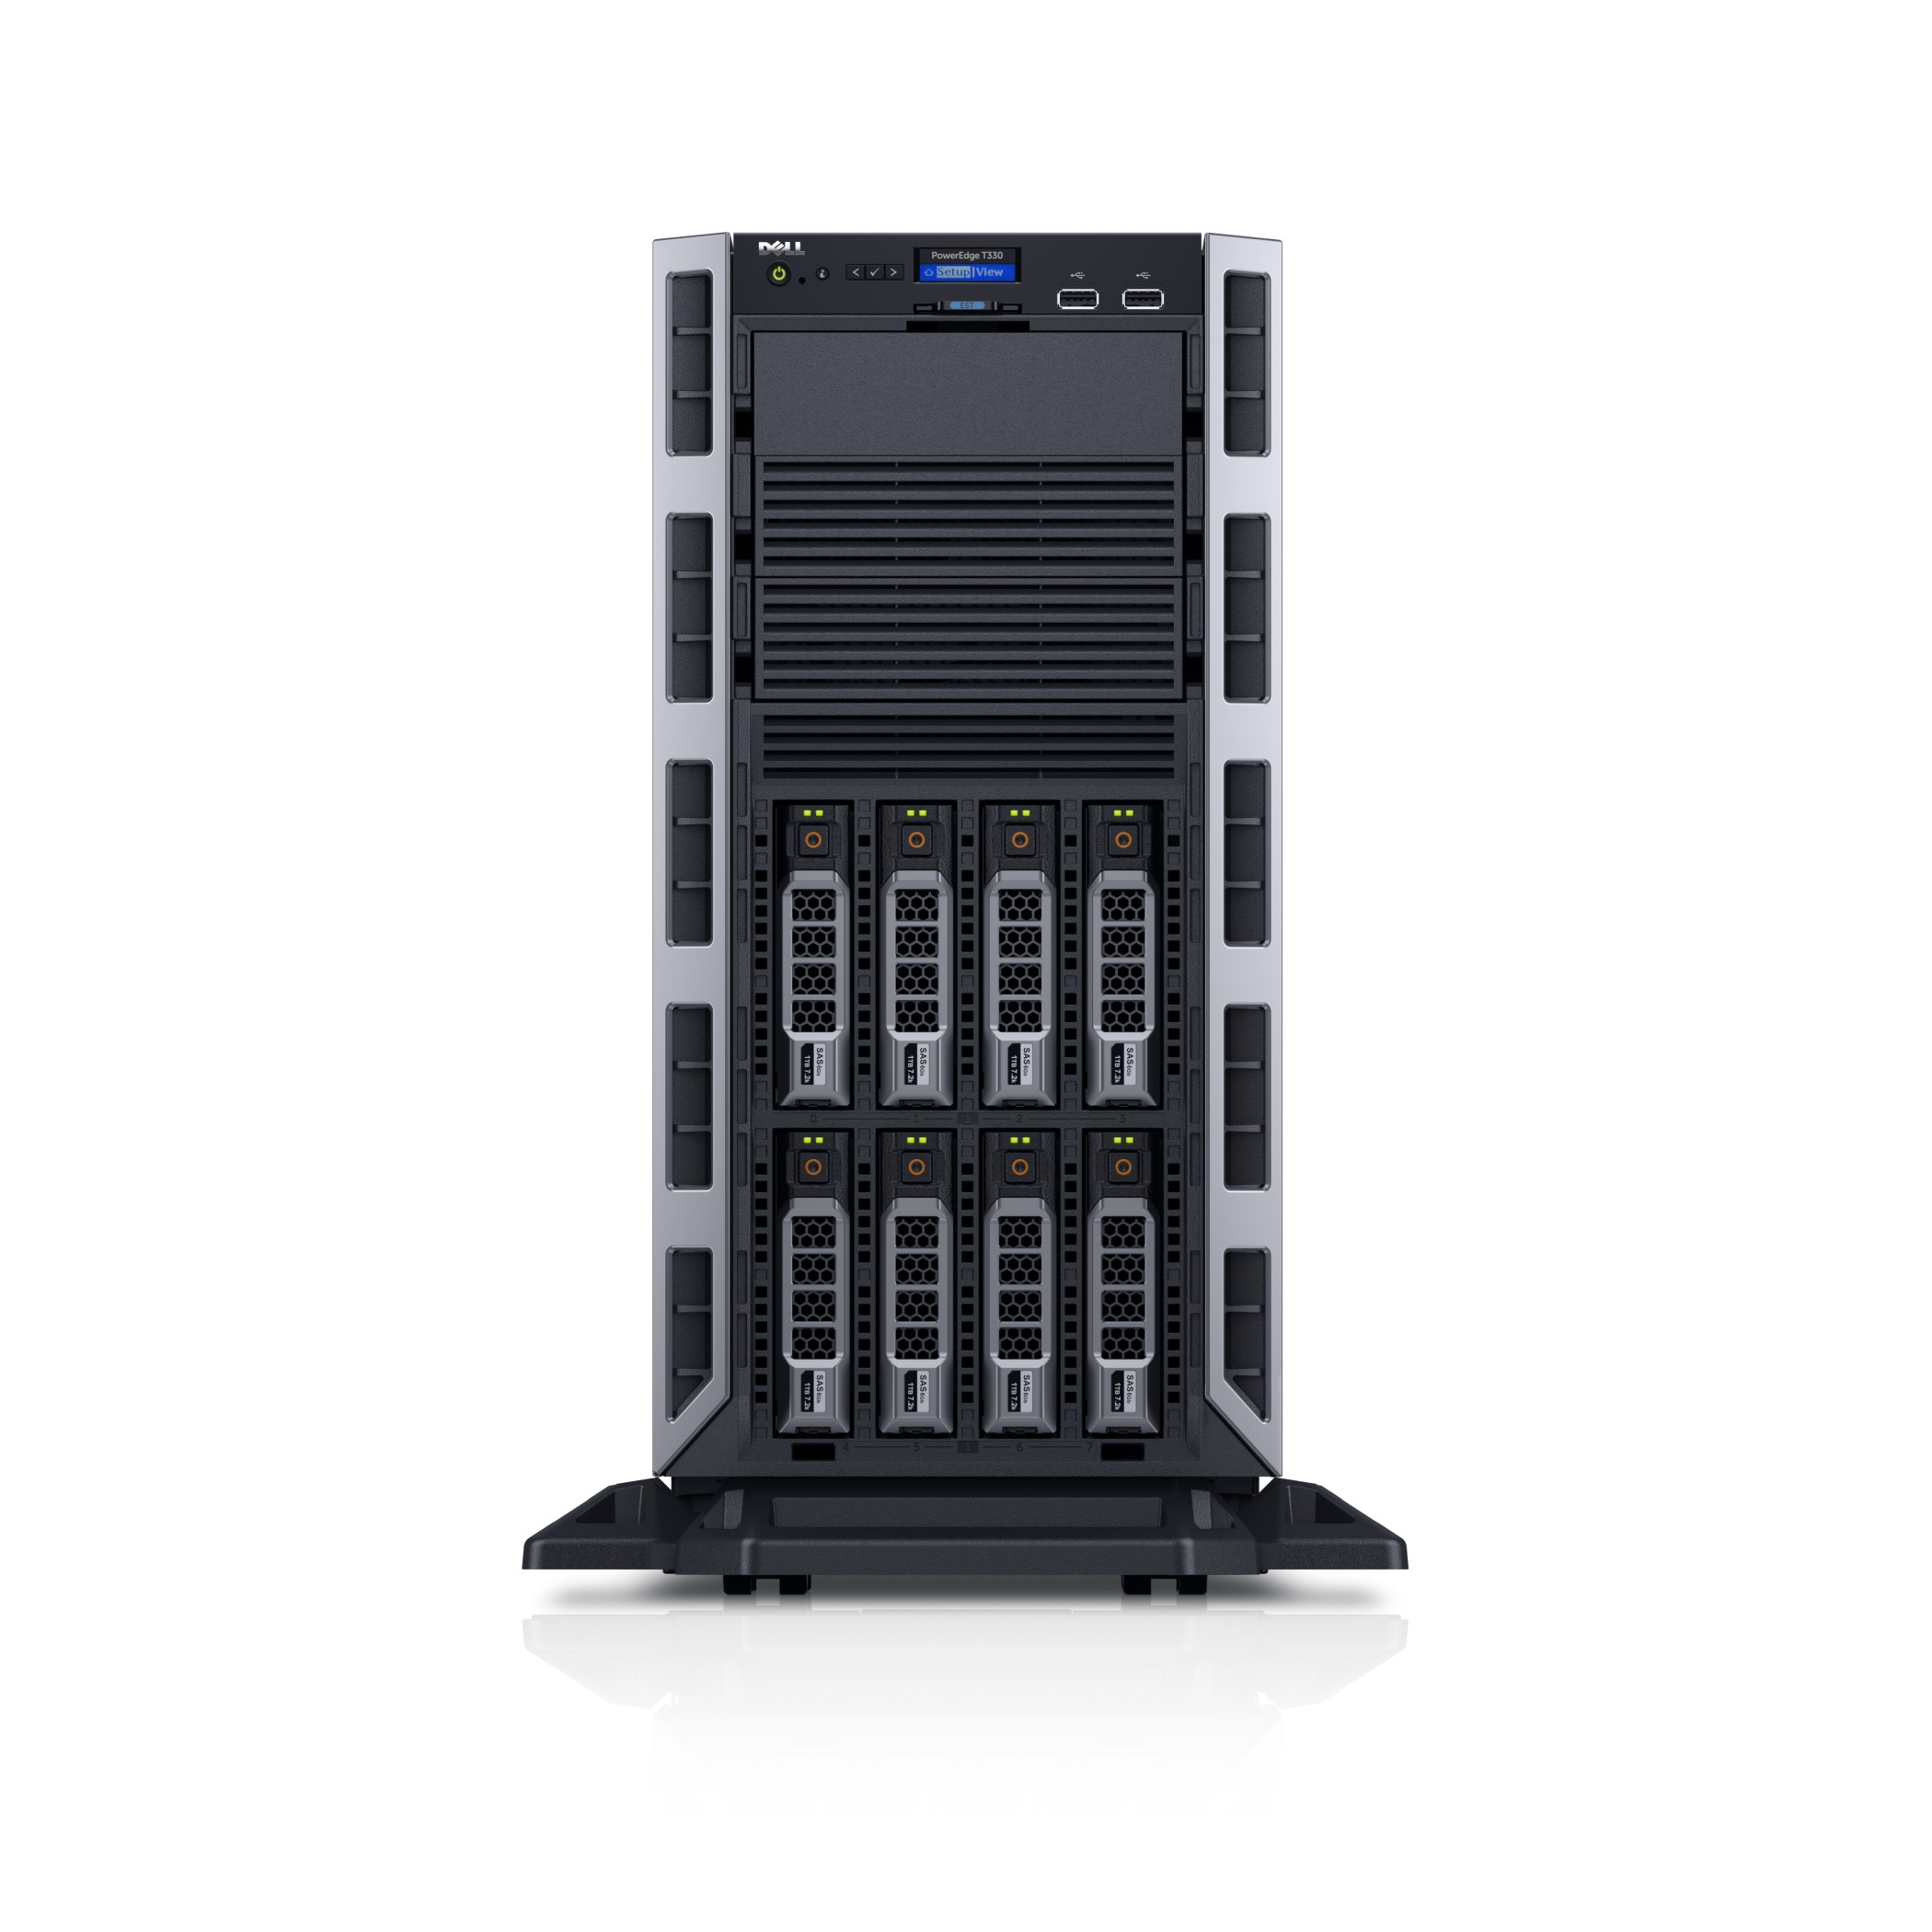 Zestaw serwer DELL PowerEdge T330 E3-1220 v6 8GB 300GB SAS 3,5'' H330 iDRAC DVD 3yNBD + Windows Server 2016 Essentials